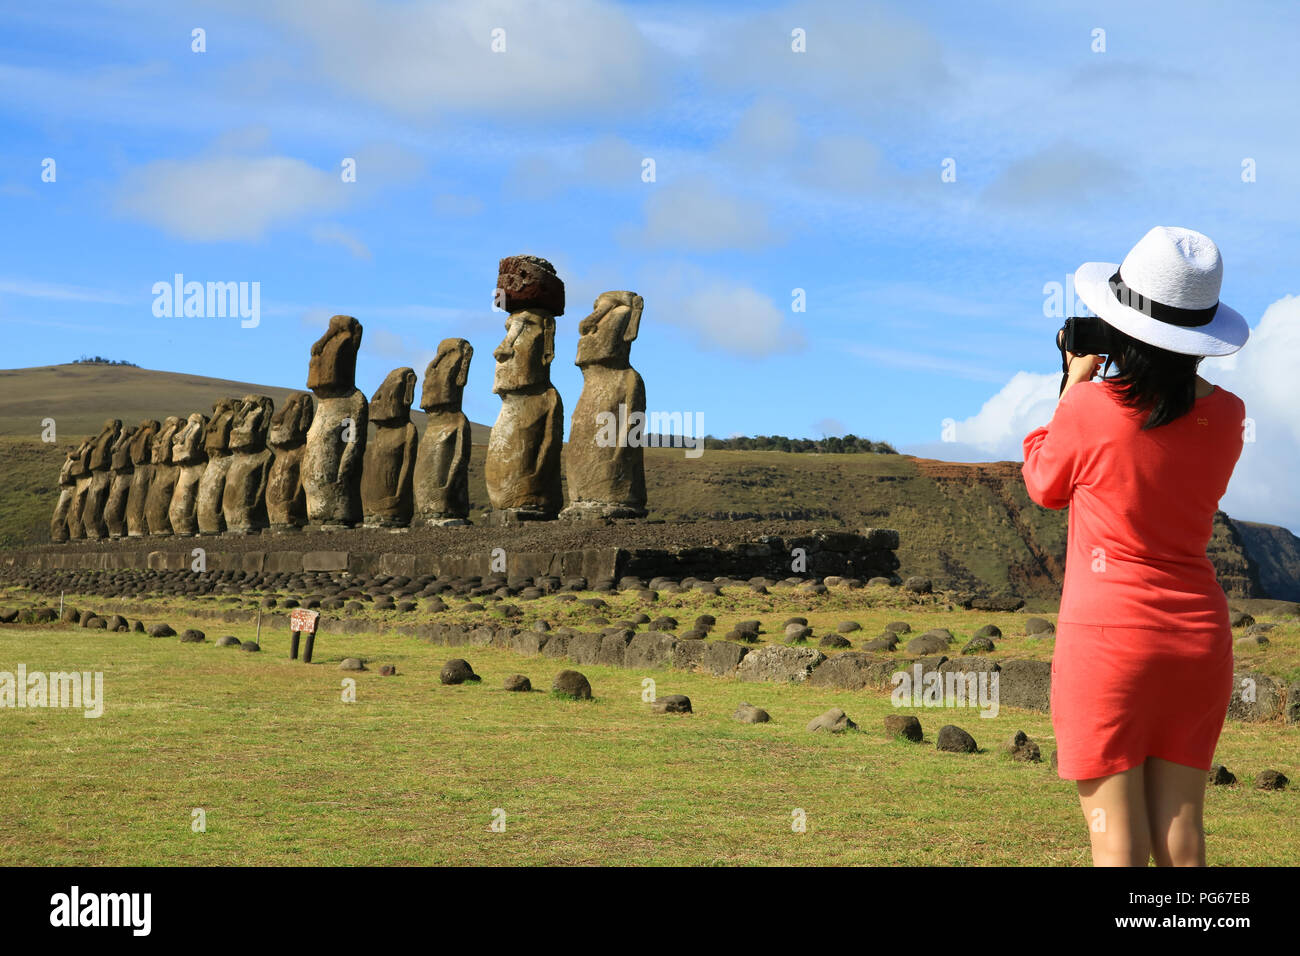 Young woman taking pictures of the famous Moai statues at Ahu Tongariki on Easter Island, Archaeological site in Chile - Stock Image